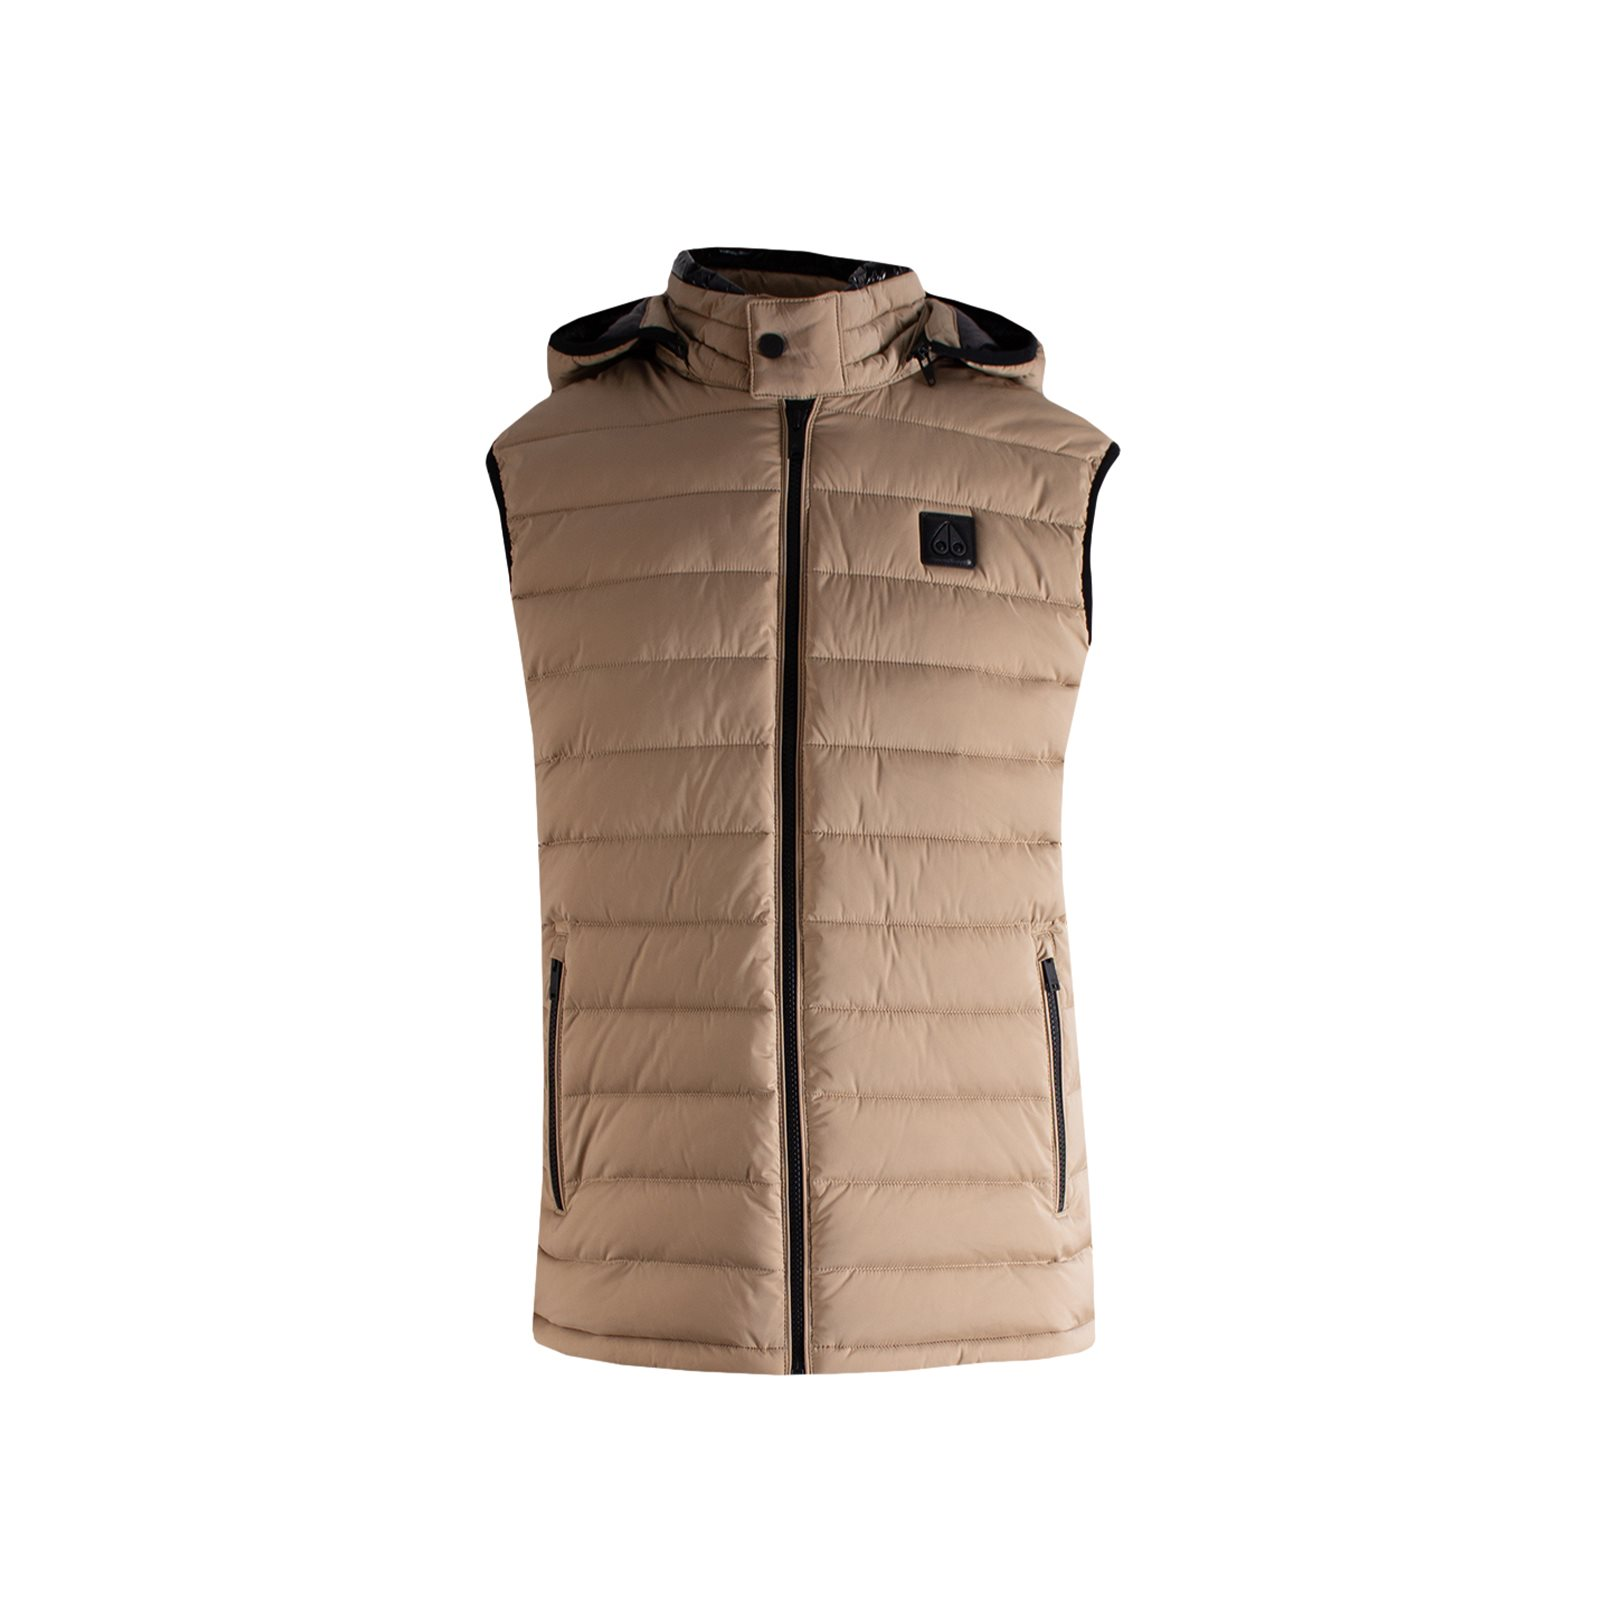 Moose Knuckles Bodywarmer